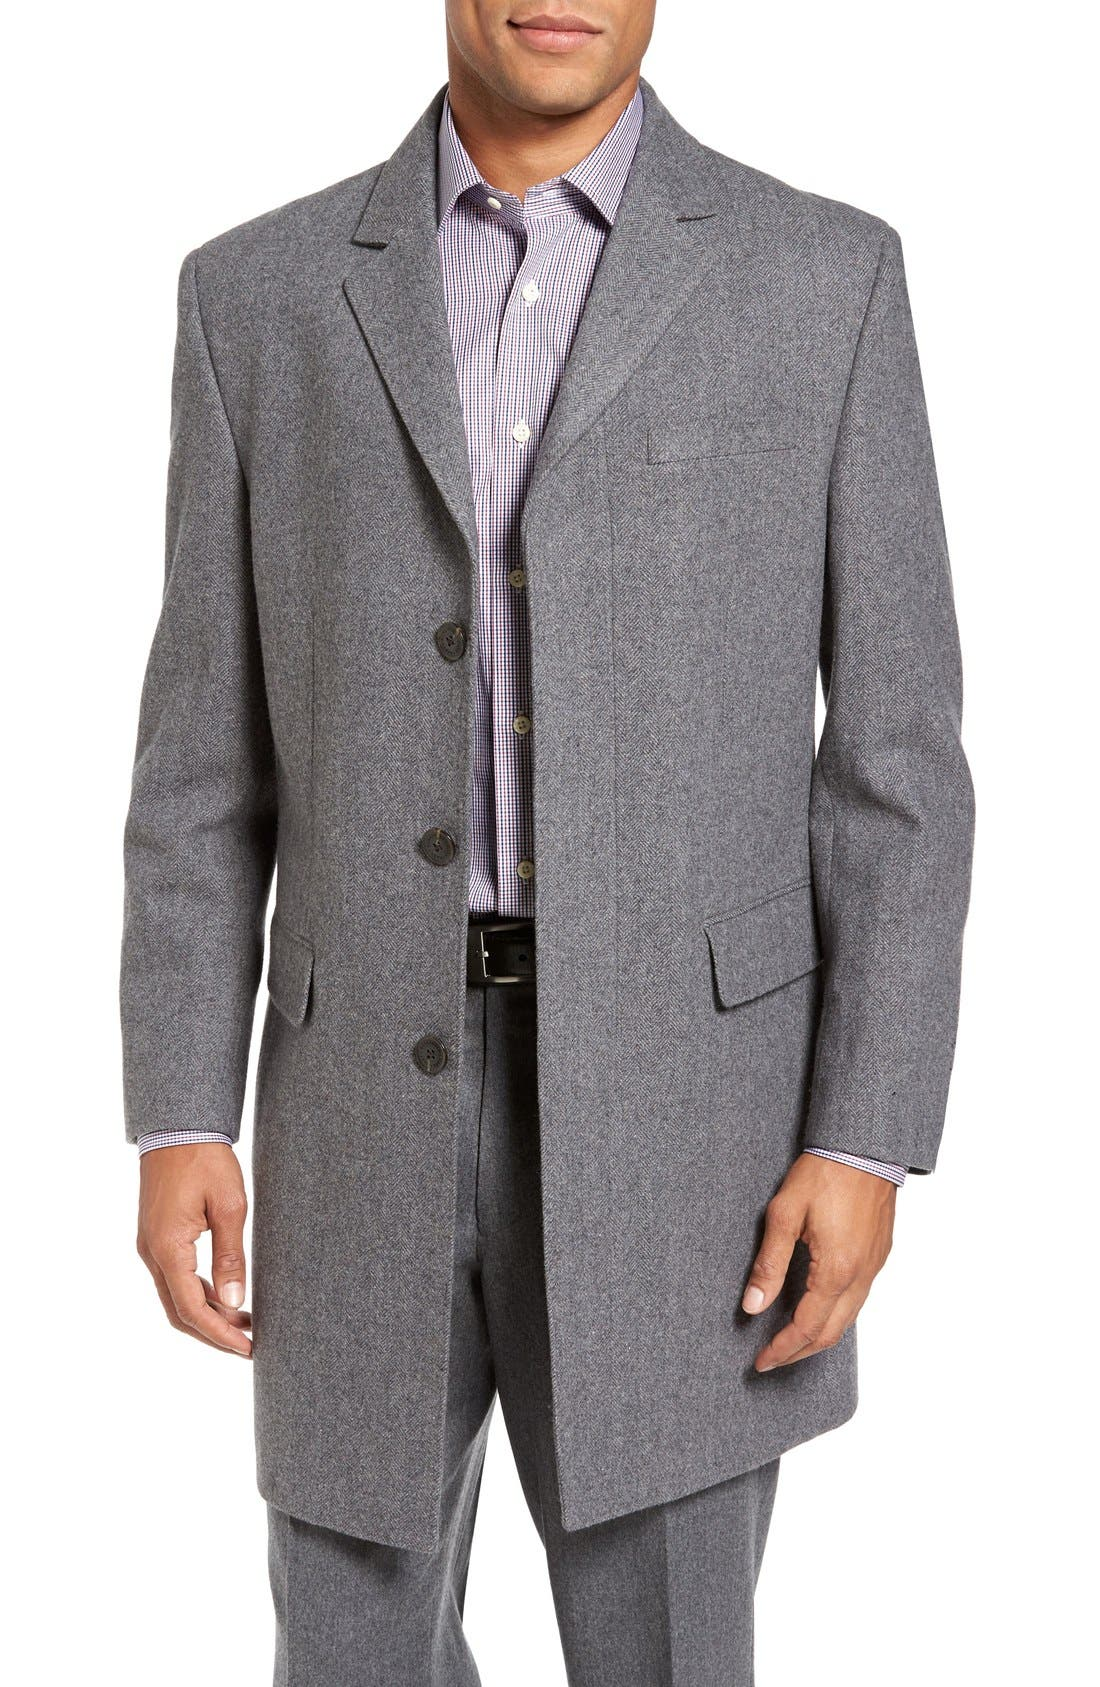 Alternate Image 1 Selected - Hart Schaffner Marx Maitland Modern Fit Wool Blend Overcoat